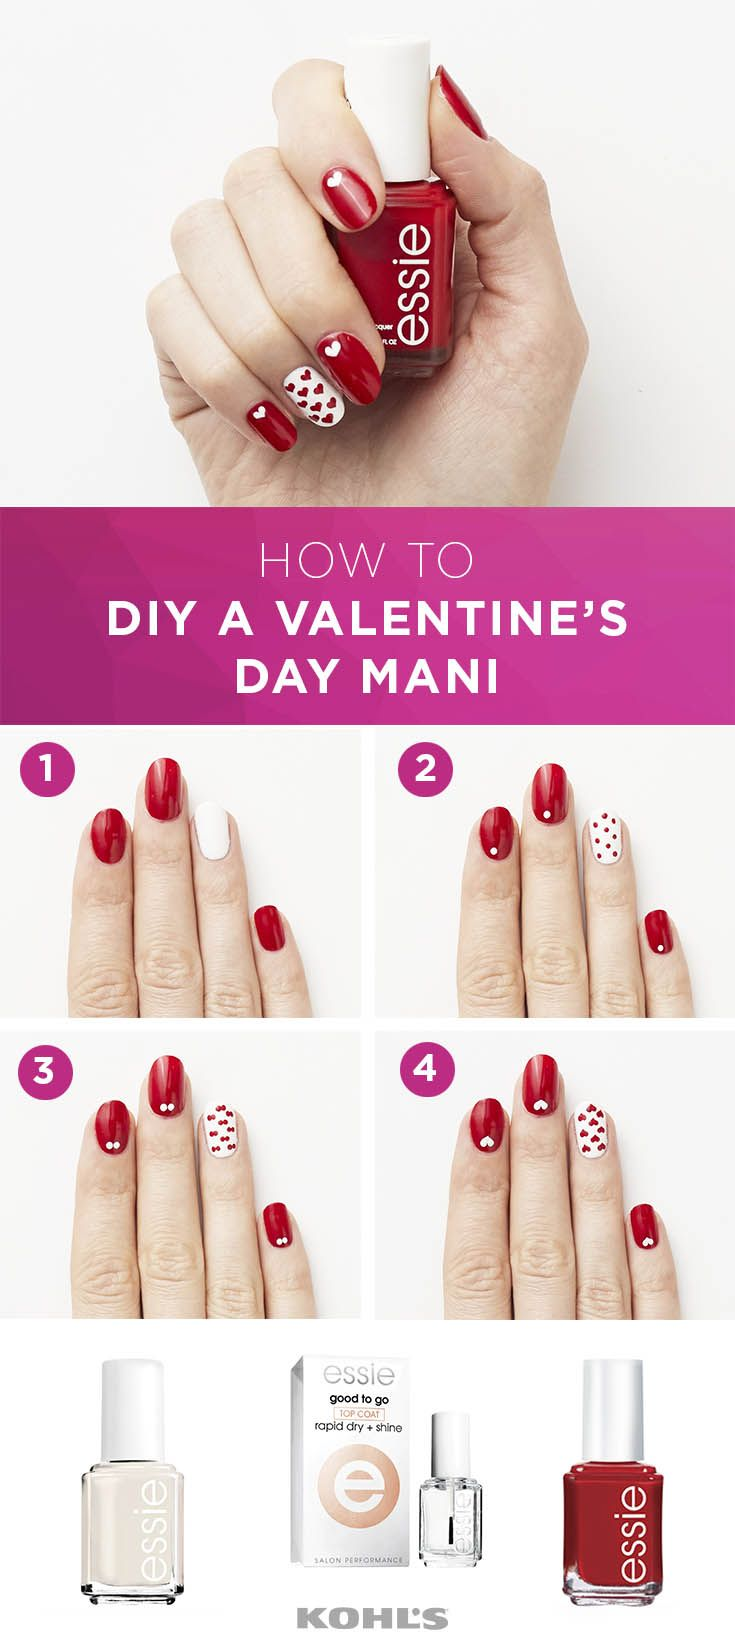 Step 1: Apply two coats of an essie polish in red like Forever Yummy ...